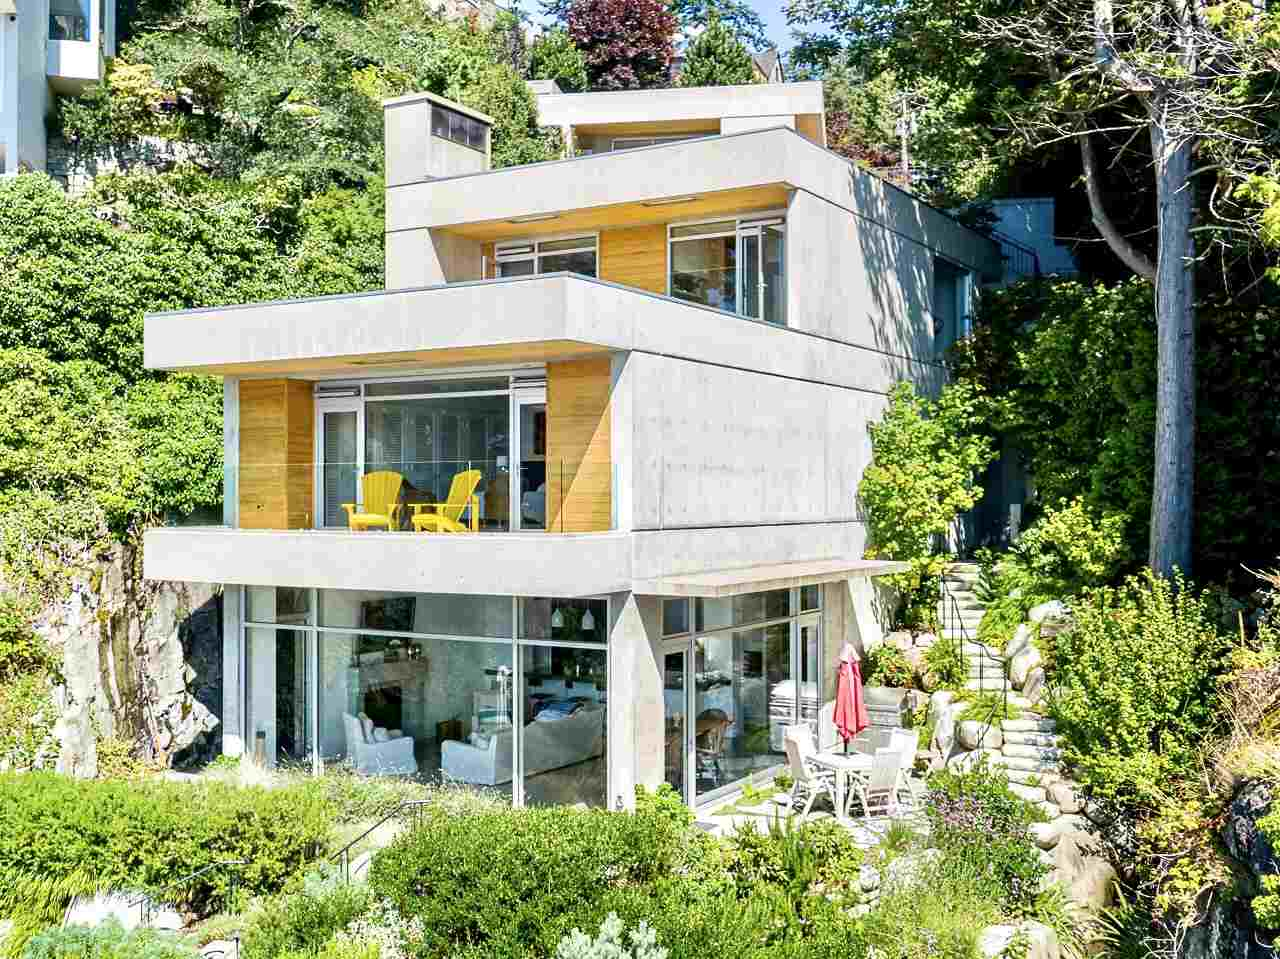 Gleneagles waterfront masterpiece, completely private beach house. Approx. 4,387 sq.ft (incl. garage 423 sf & storage 168 sf) on 3 levels (Main 1,313 sf, Above 1,592 sf, Top Floor 654 sf + Studio 237 sf) - see floorplan. Luxury finishings, concrete, steel, wood & custom floor-to-ceiling sliding windows, European white oak and polished concrete floors. Casual, yet elegant with jaw-dropping views from main rooms. Indigenous landscaping, babbling creek, waterside terraces, & access to your own private beach. Additionally, this home features a firepit, home automation, A/C, radiant ht, water filtratn, garden irrigation, elevator, top-grade appliances, gas generator, fibre optics ready, 3 green roofs. This exclusive property is world class and provides the ultimate in luxury oceanfront living!